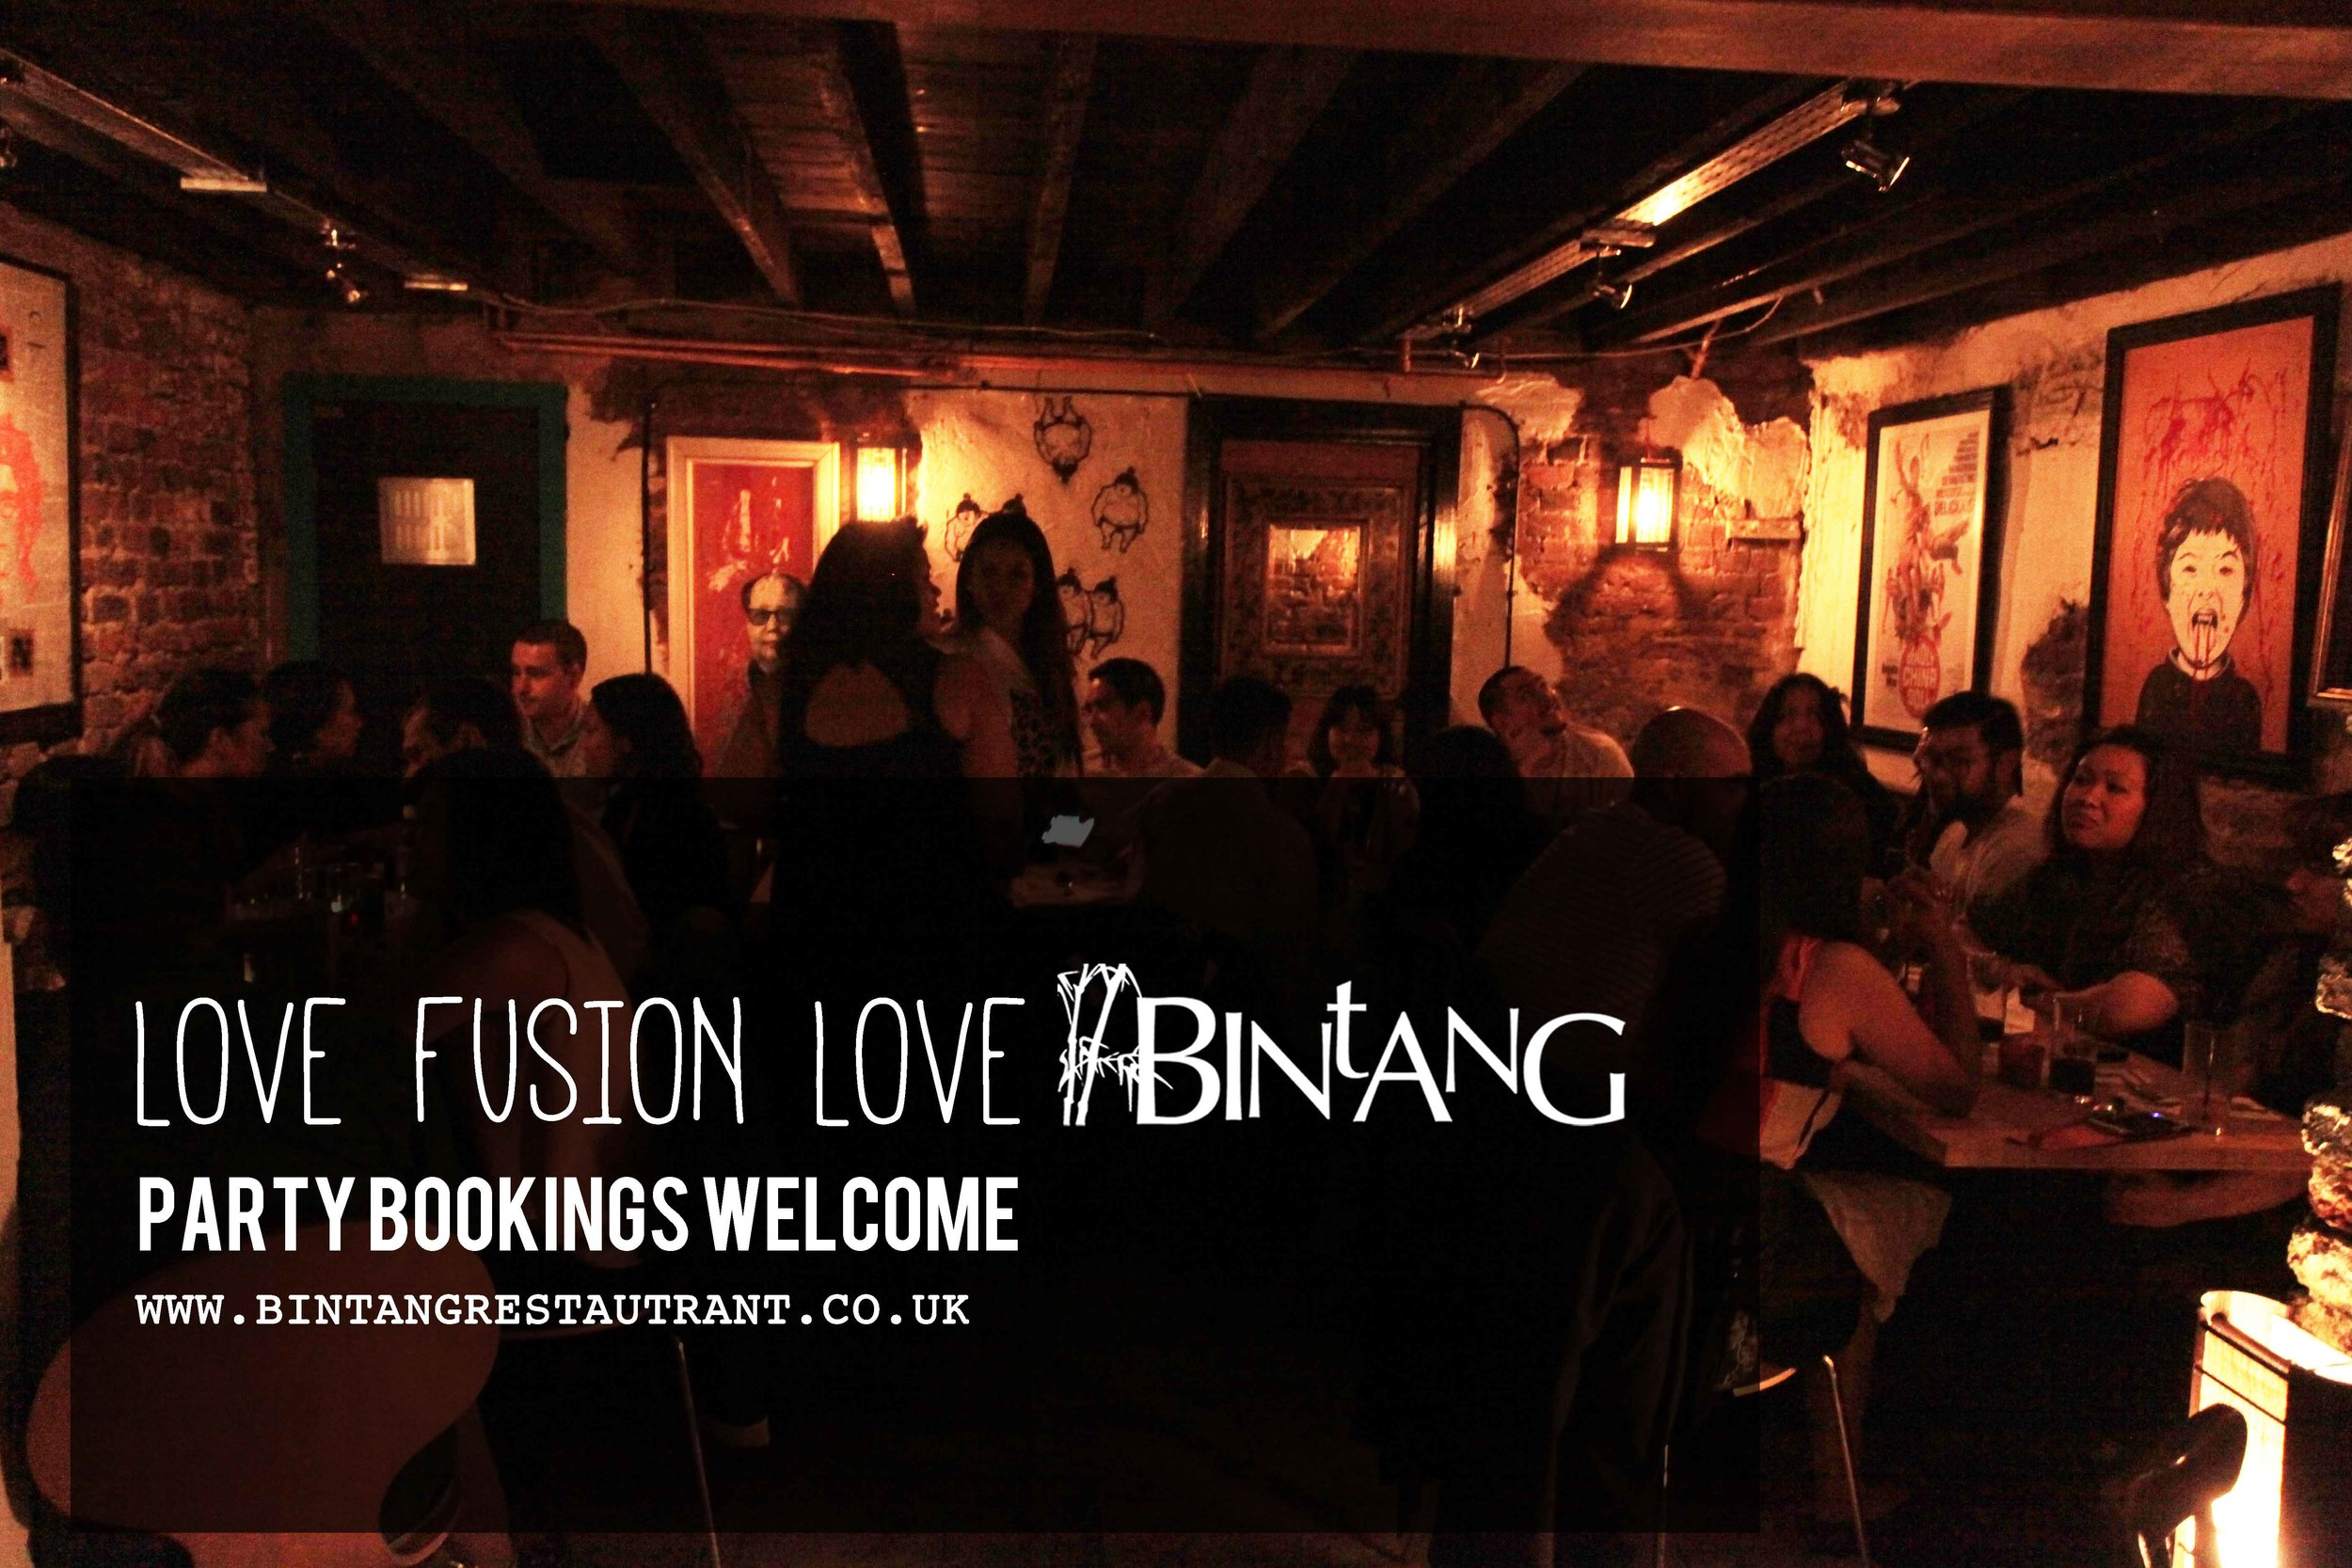 Bintang-Pan-Asian-Restaurant-Love-Fusion-Party-Photograph-2013.jpg